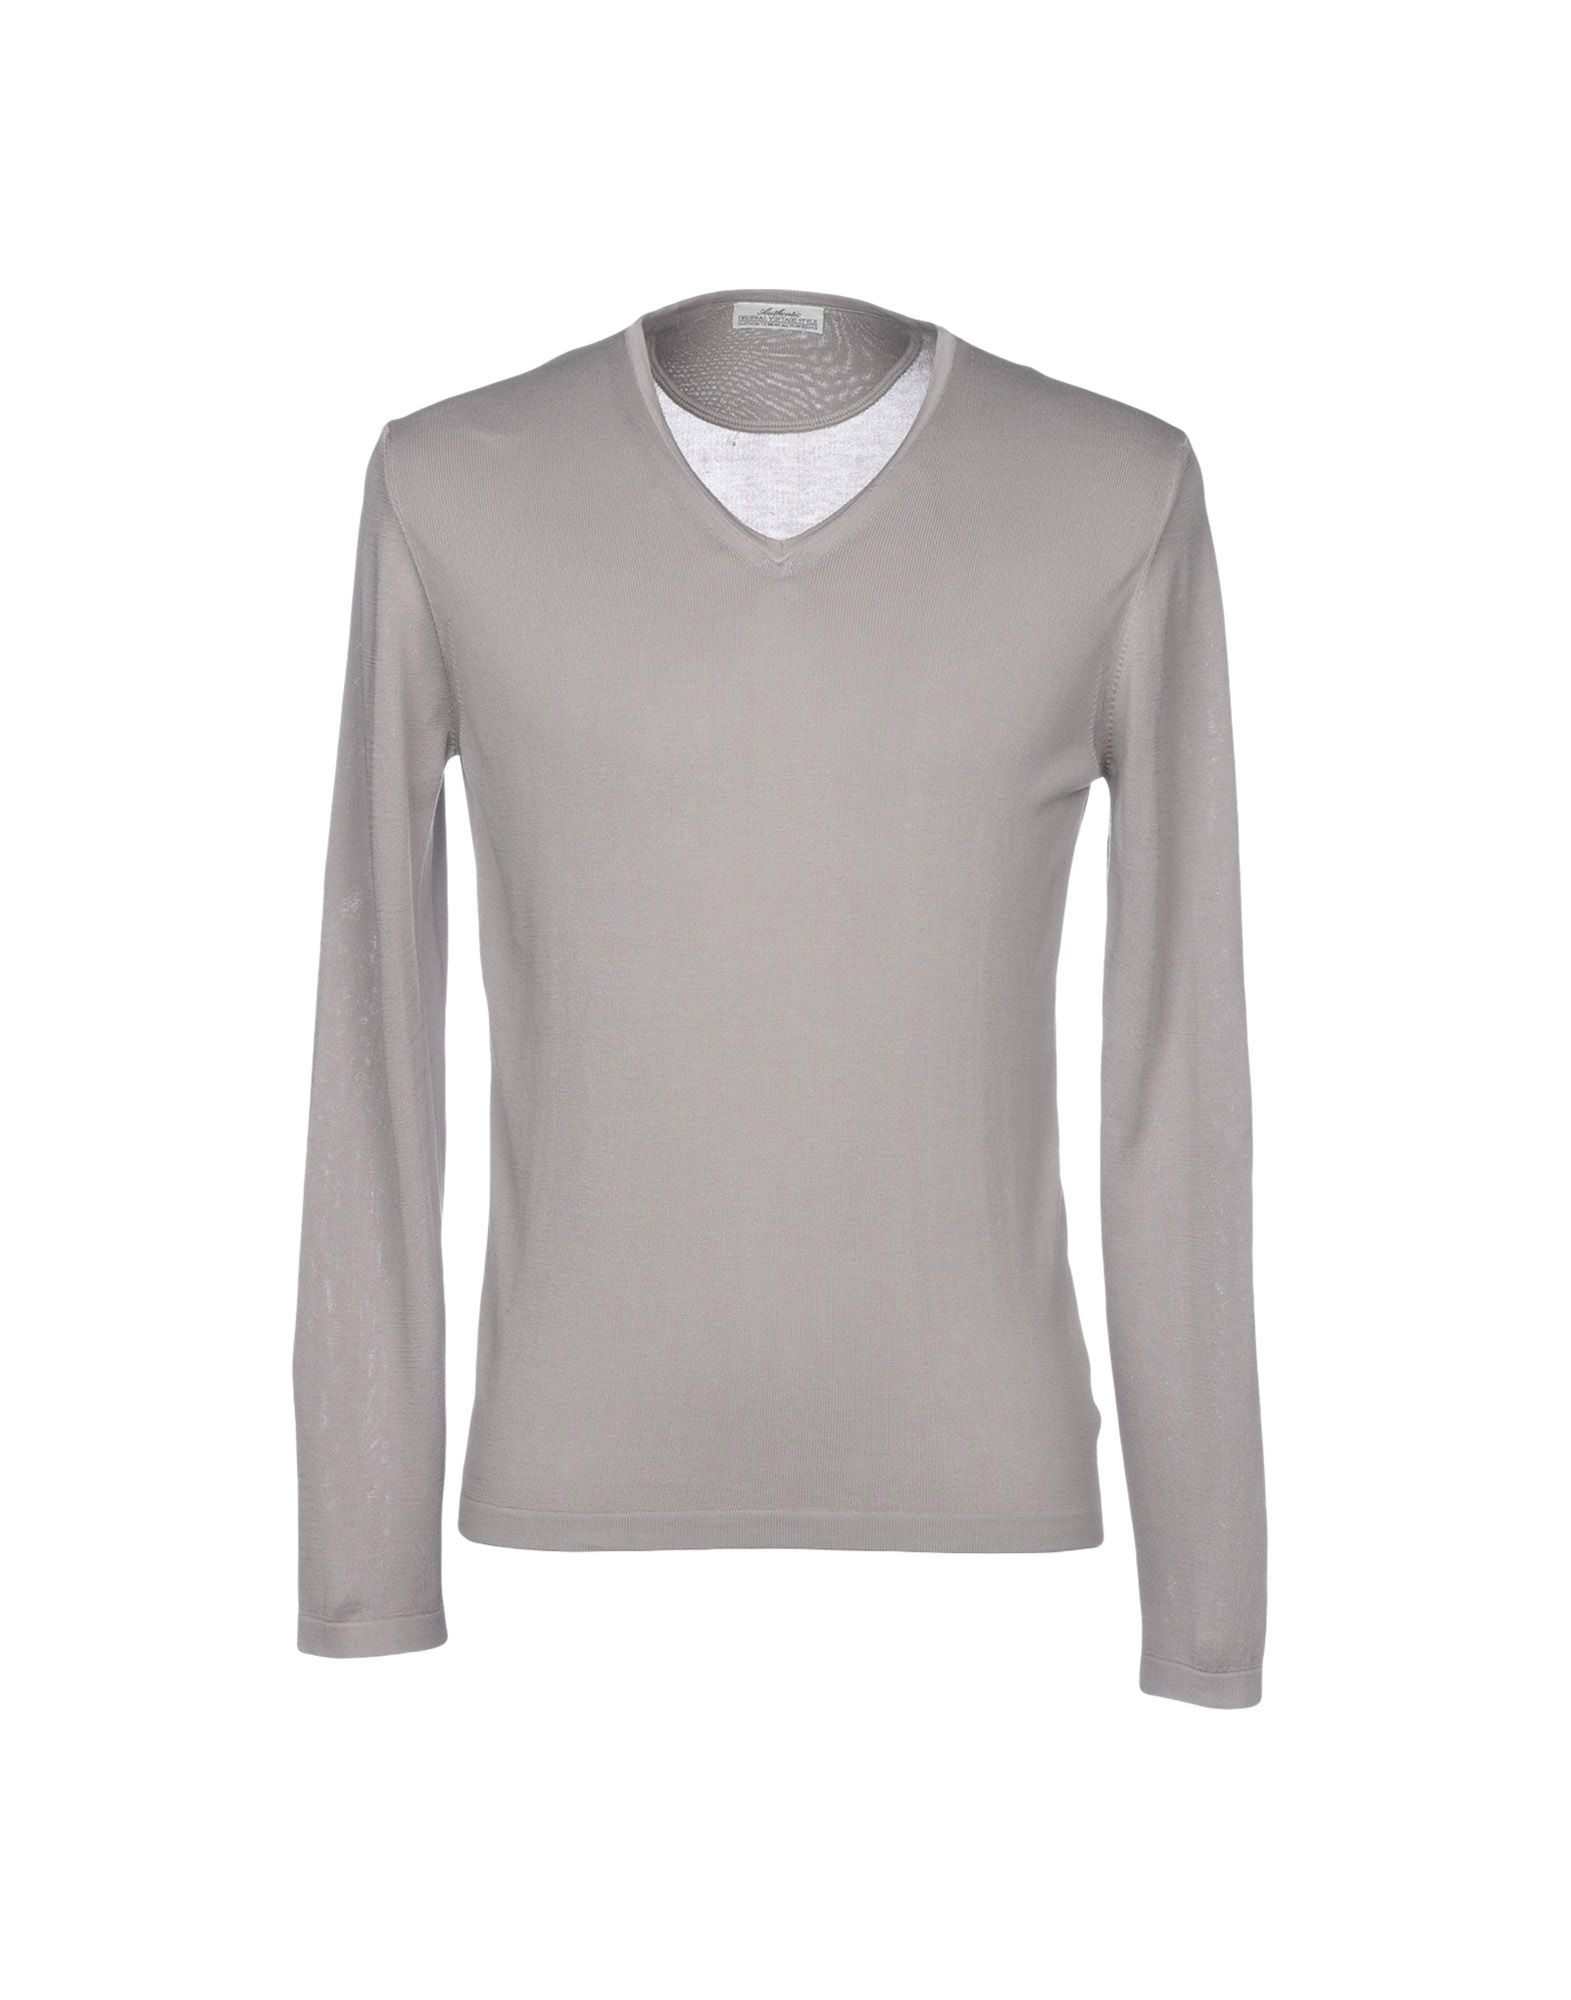 AUTHENTIC ORIGINAL VINTAGE STYLE Sweater in Grey